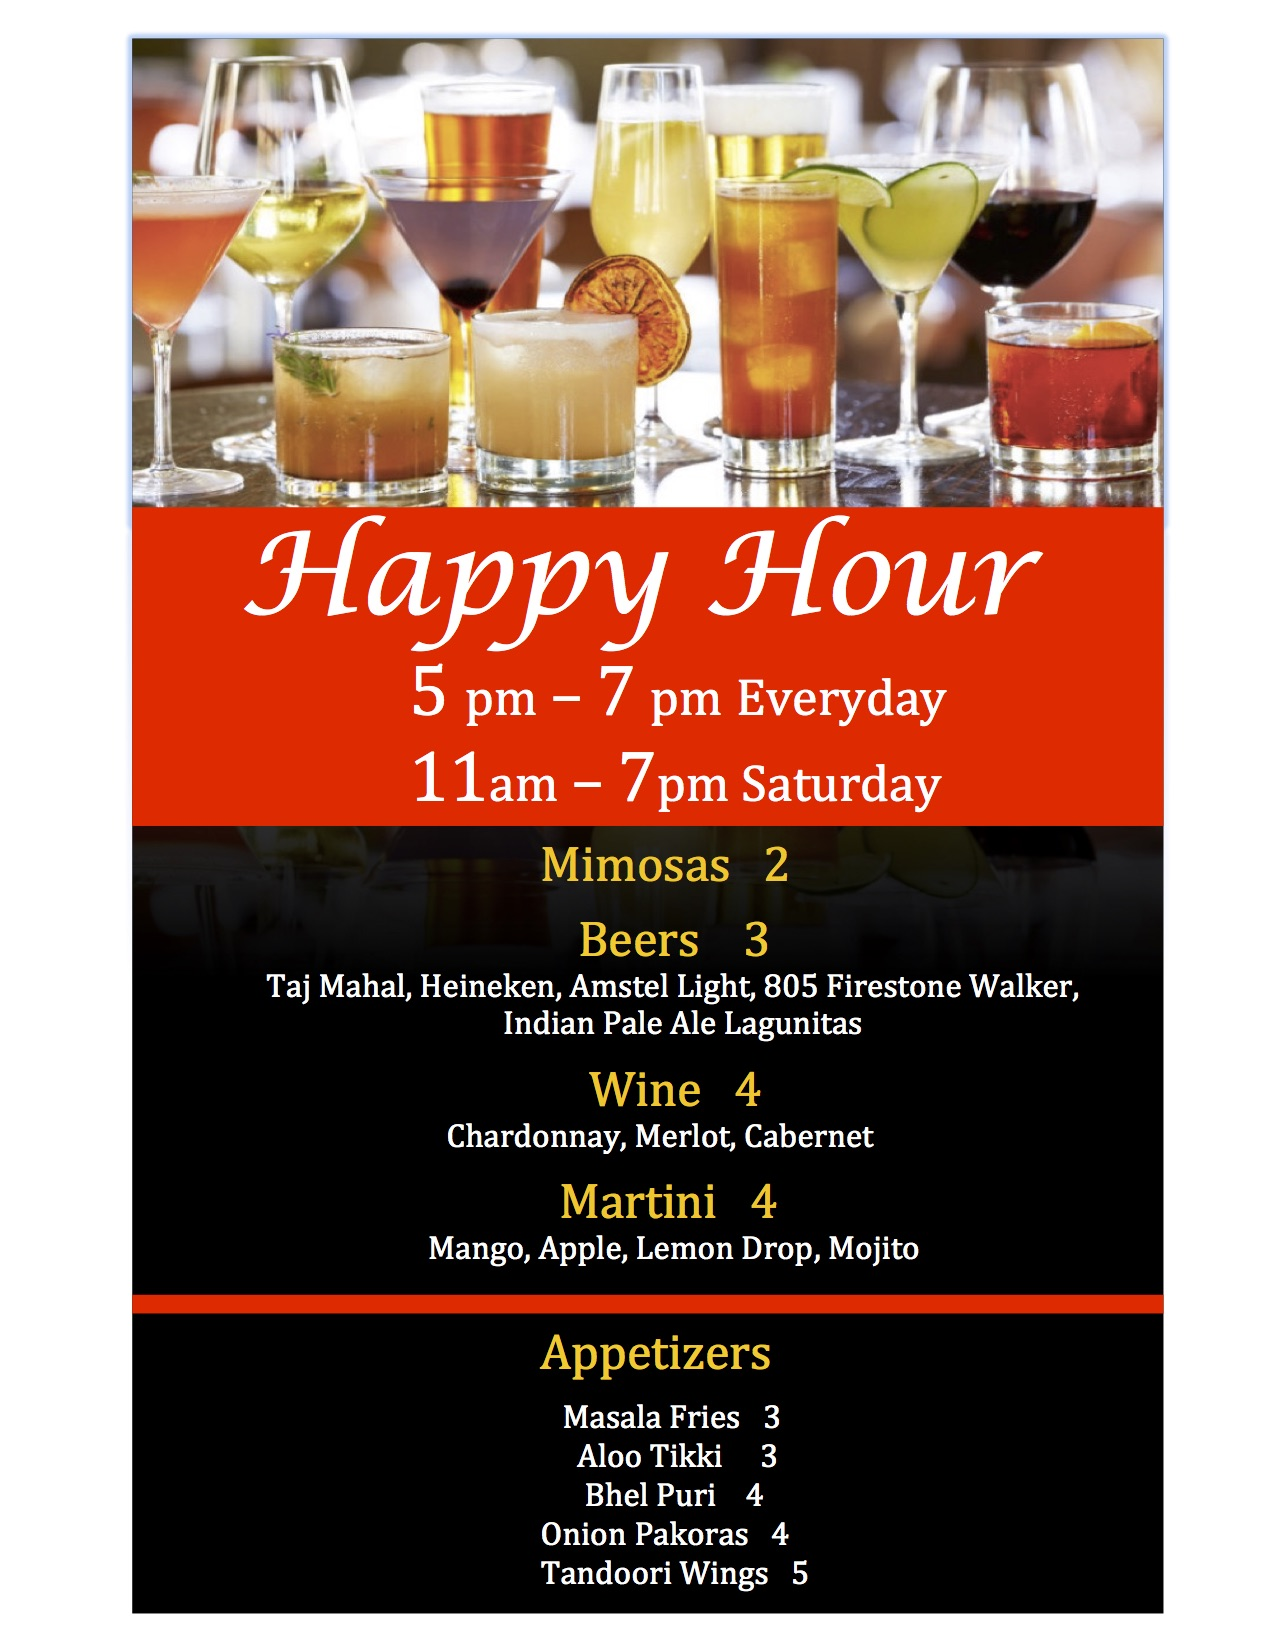 Harsimran Happy Hour Menu revised .jpg